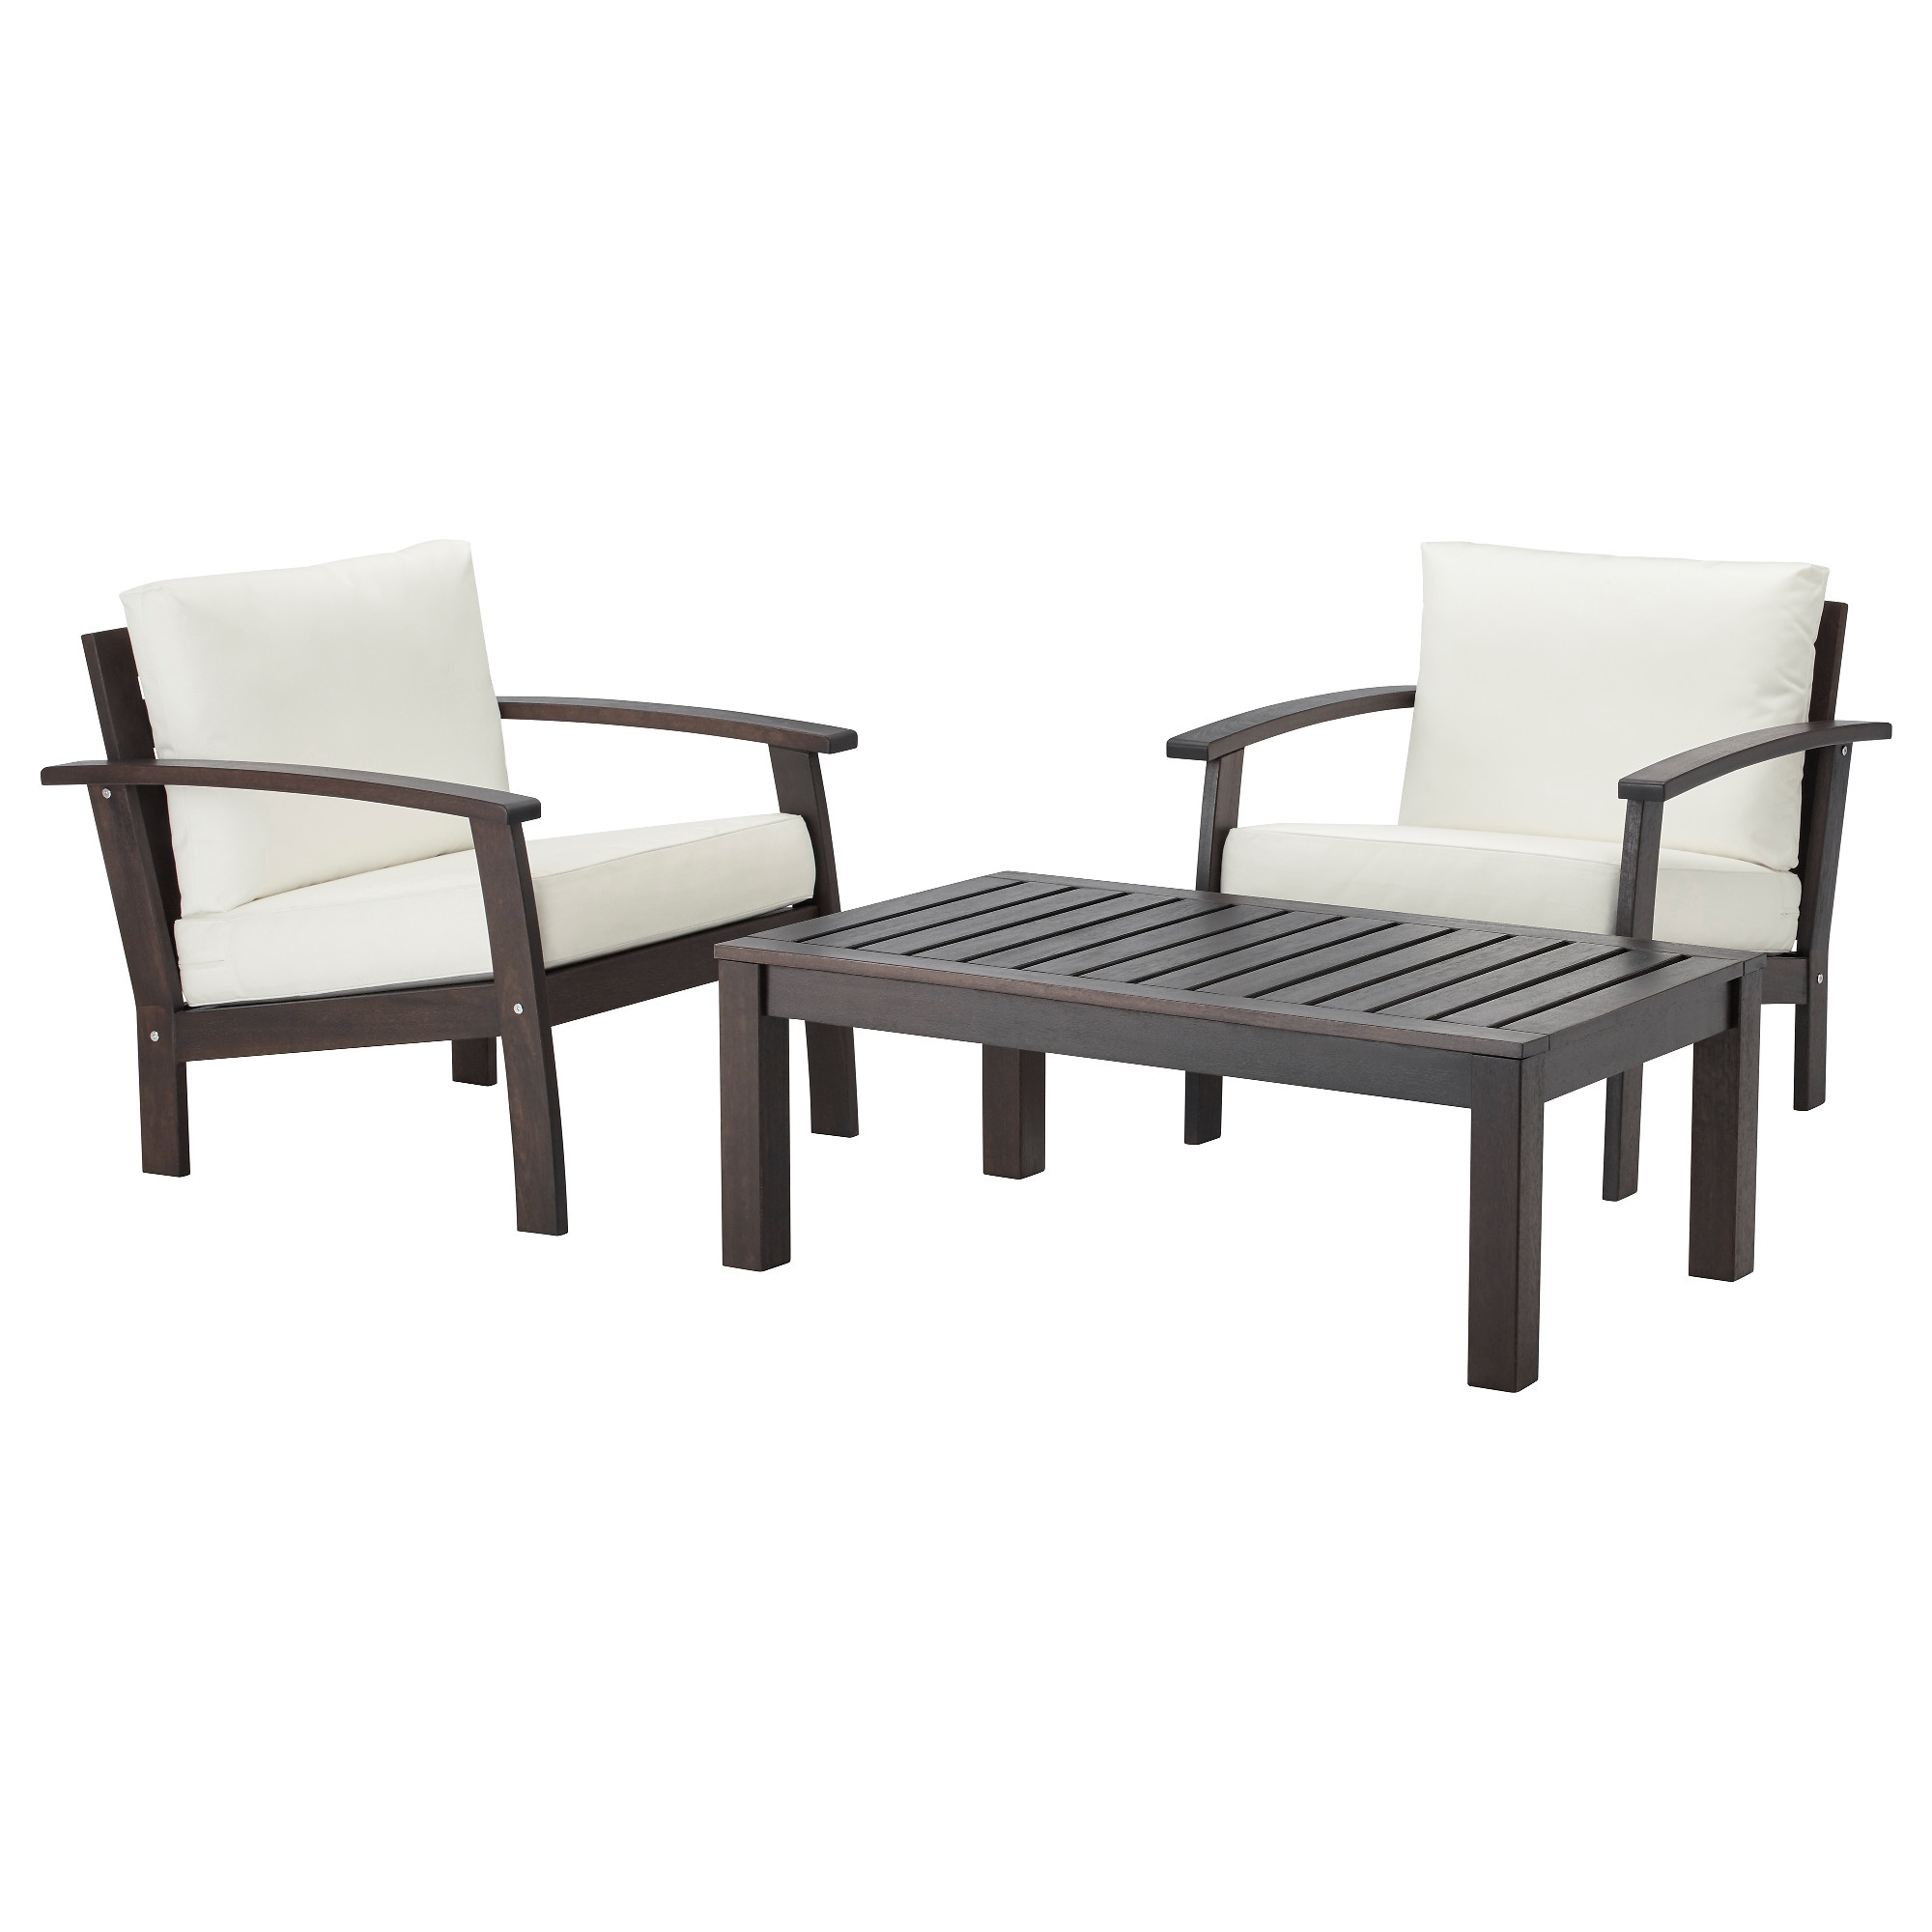 outdoor white furniture. klven kungs conversation set outdoor brown stained white furniture a